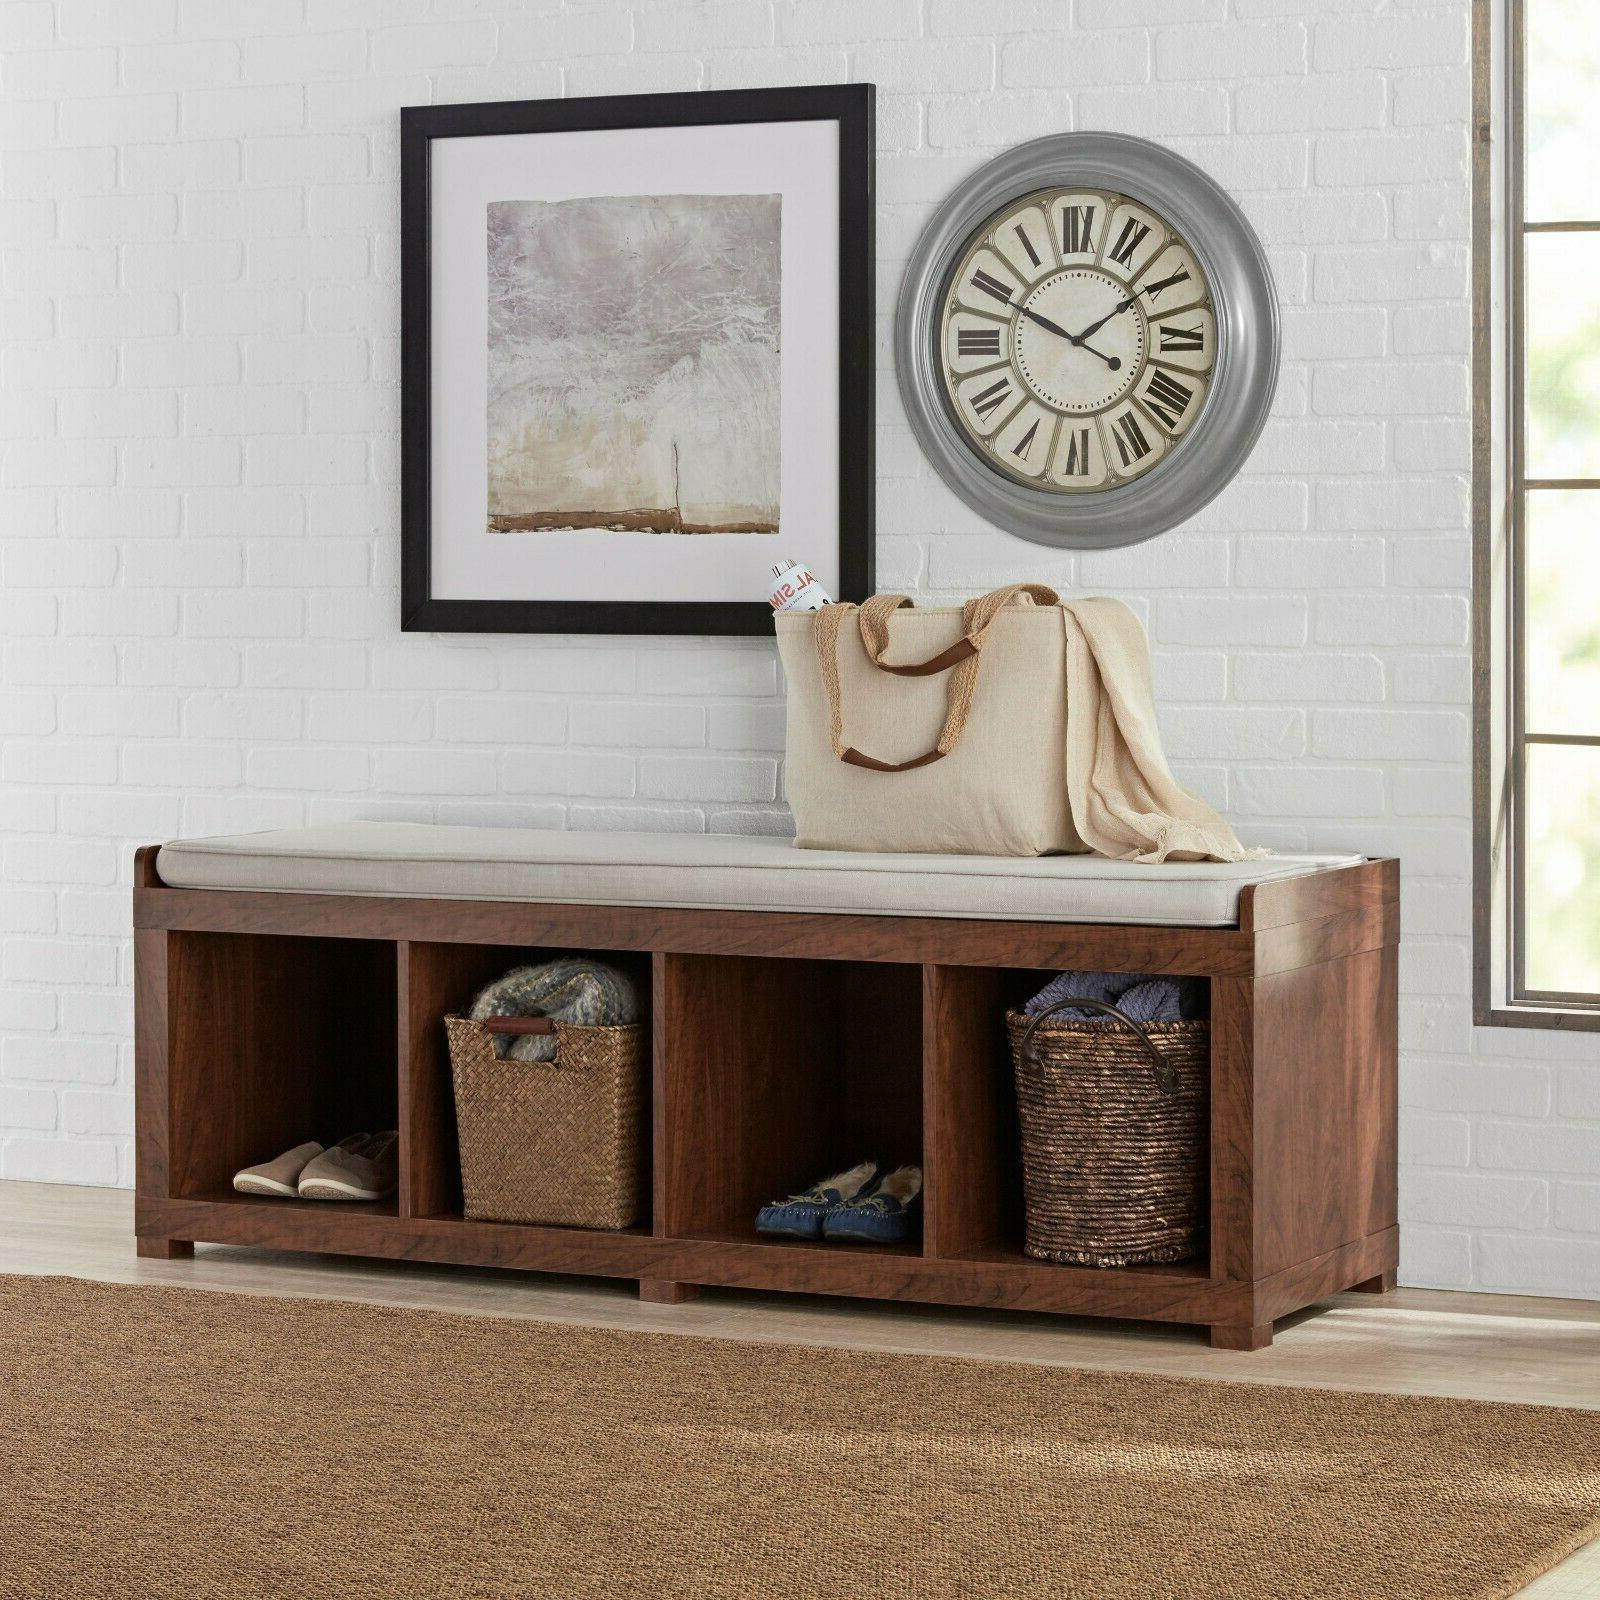 Entryway Mudroom Bench Cushion Seat Wood Upholstered